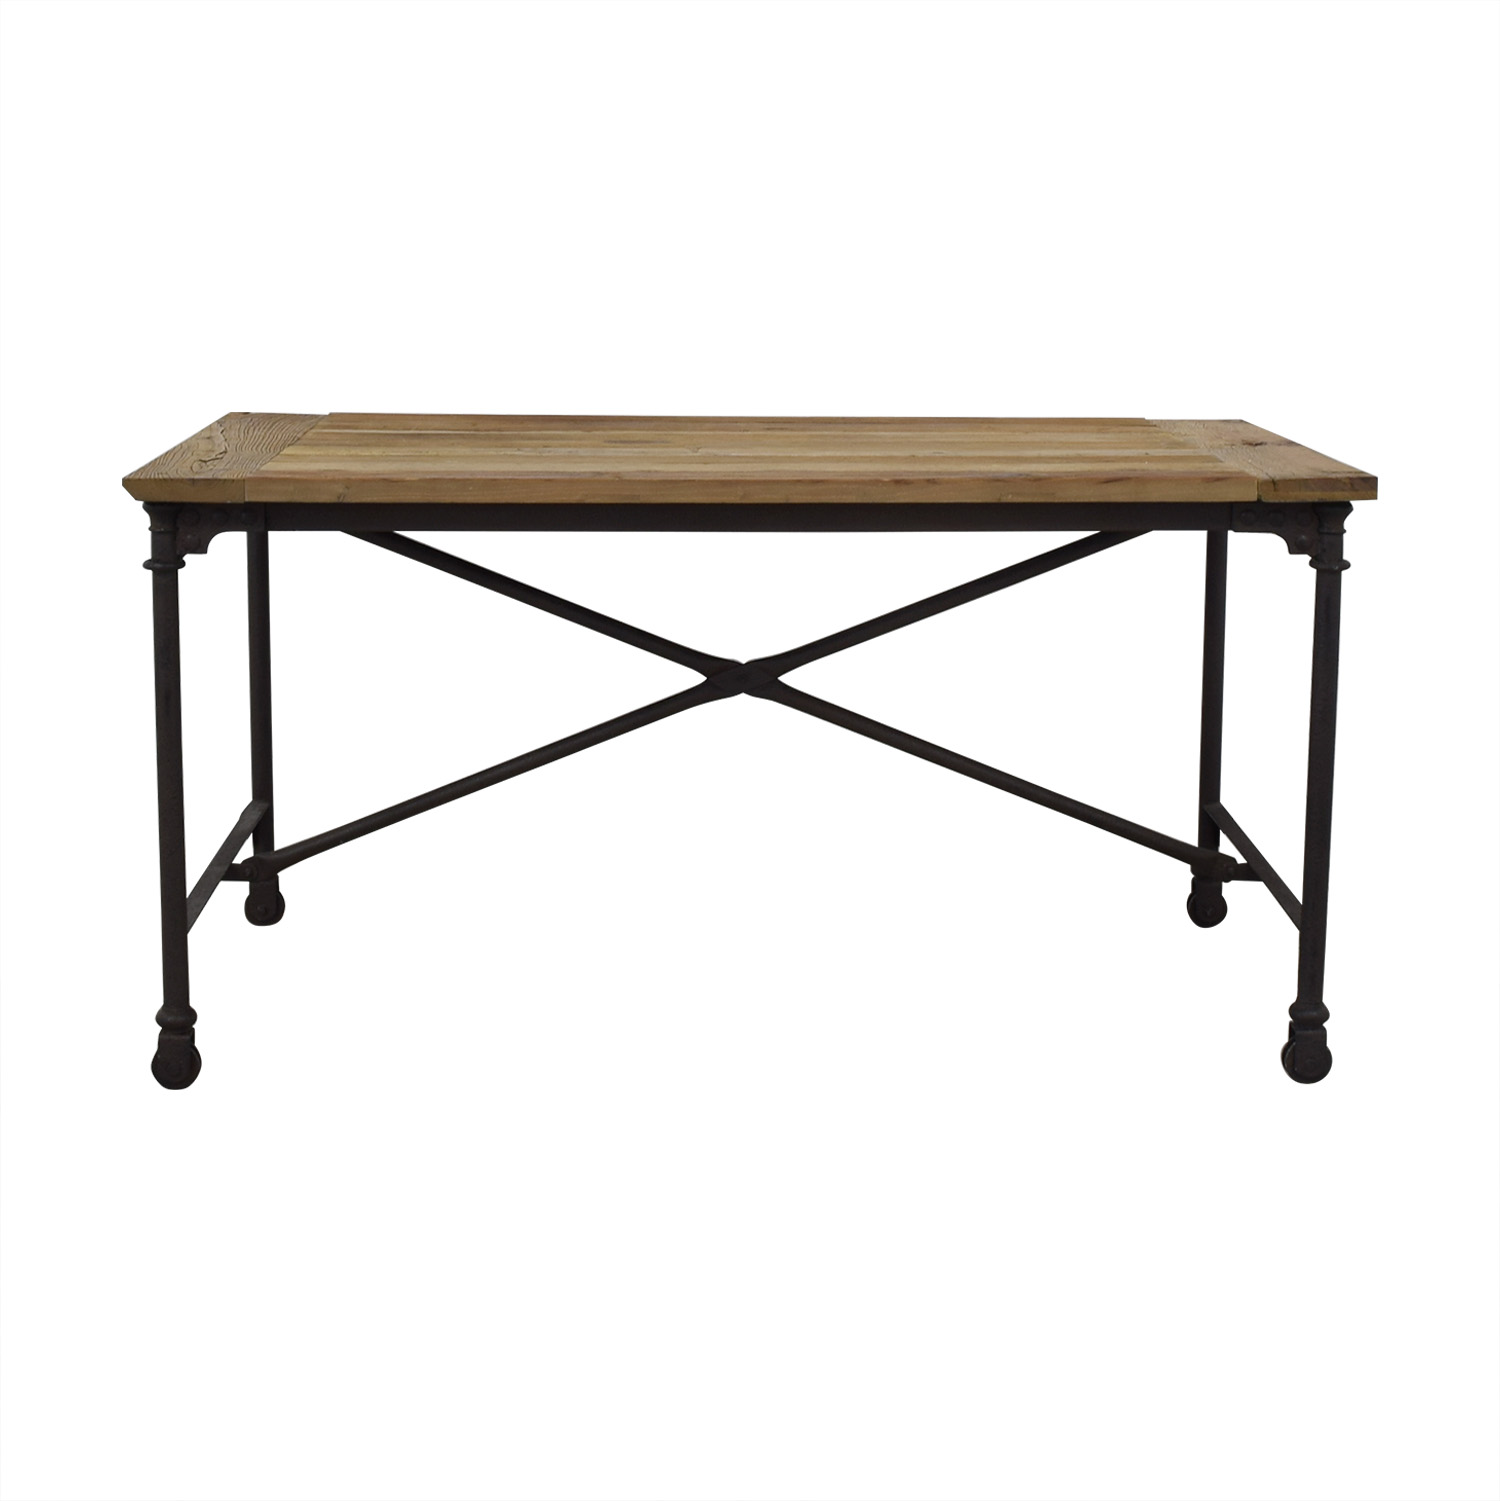 Restoration Hardware Restoration Hardware Flatiron Desk on sale